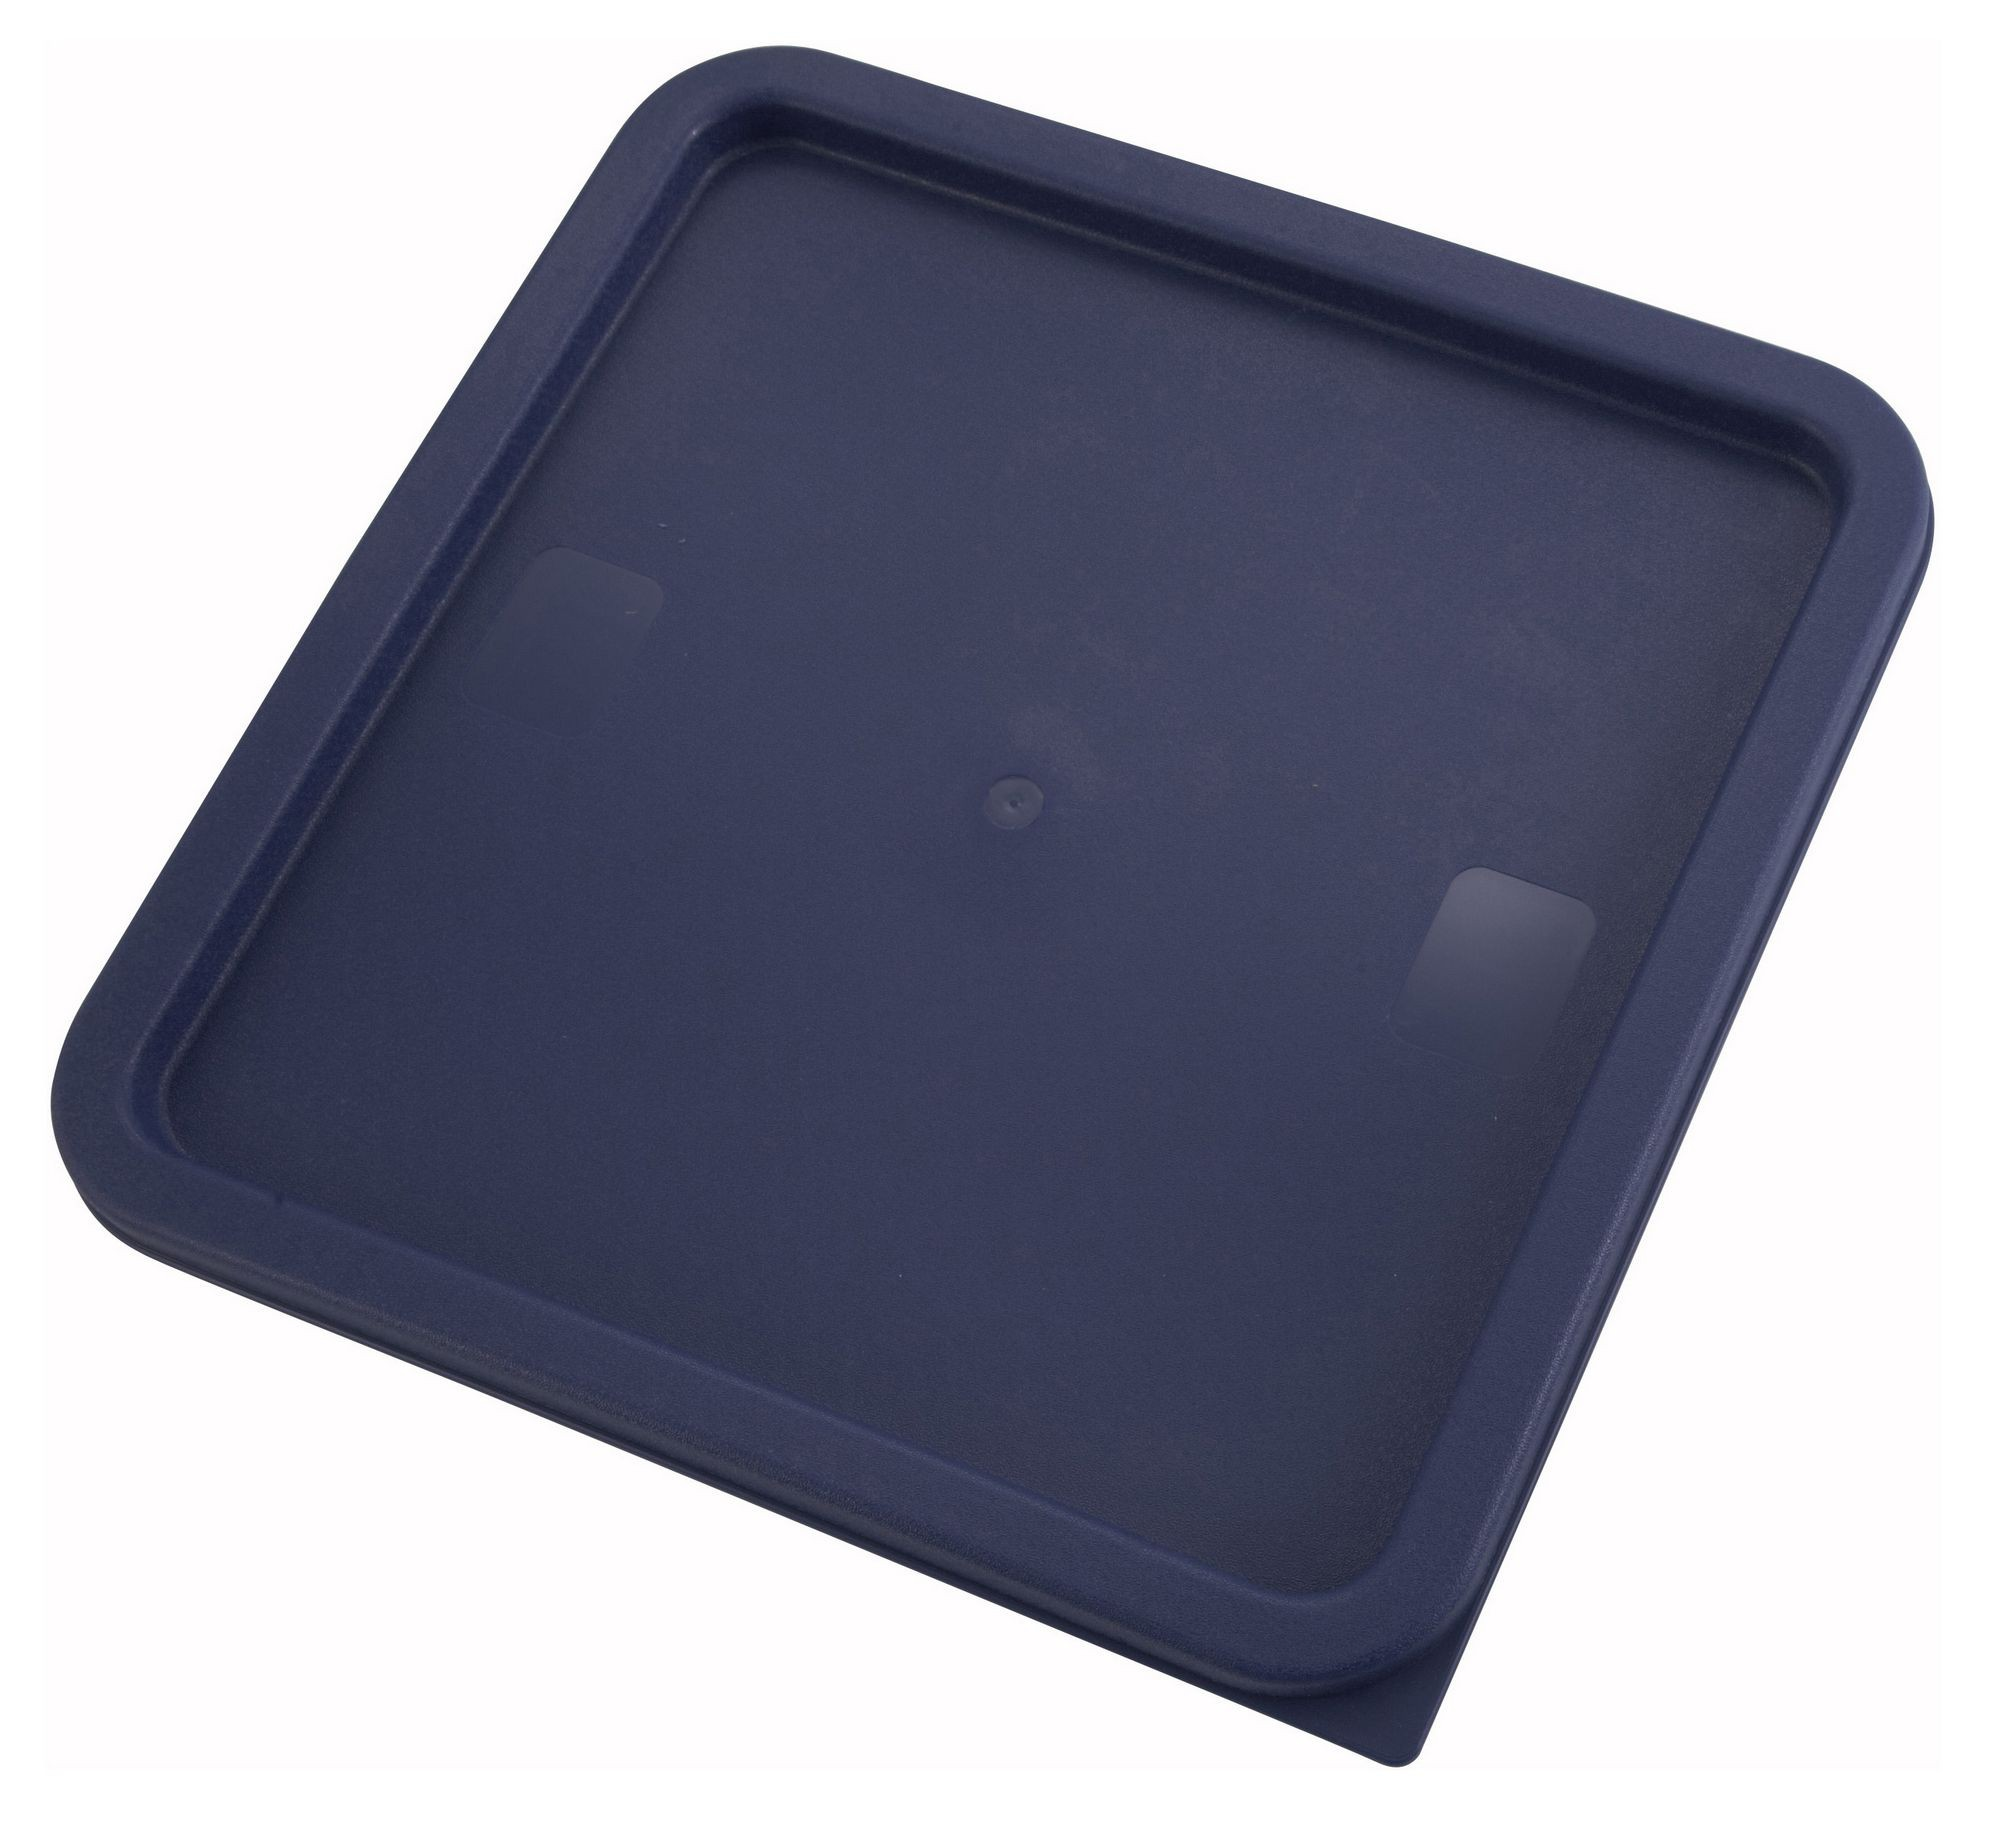 Winco PECC-128 Blue Container Cover fits 12/18/22 Qt. Square Containers